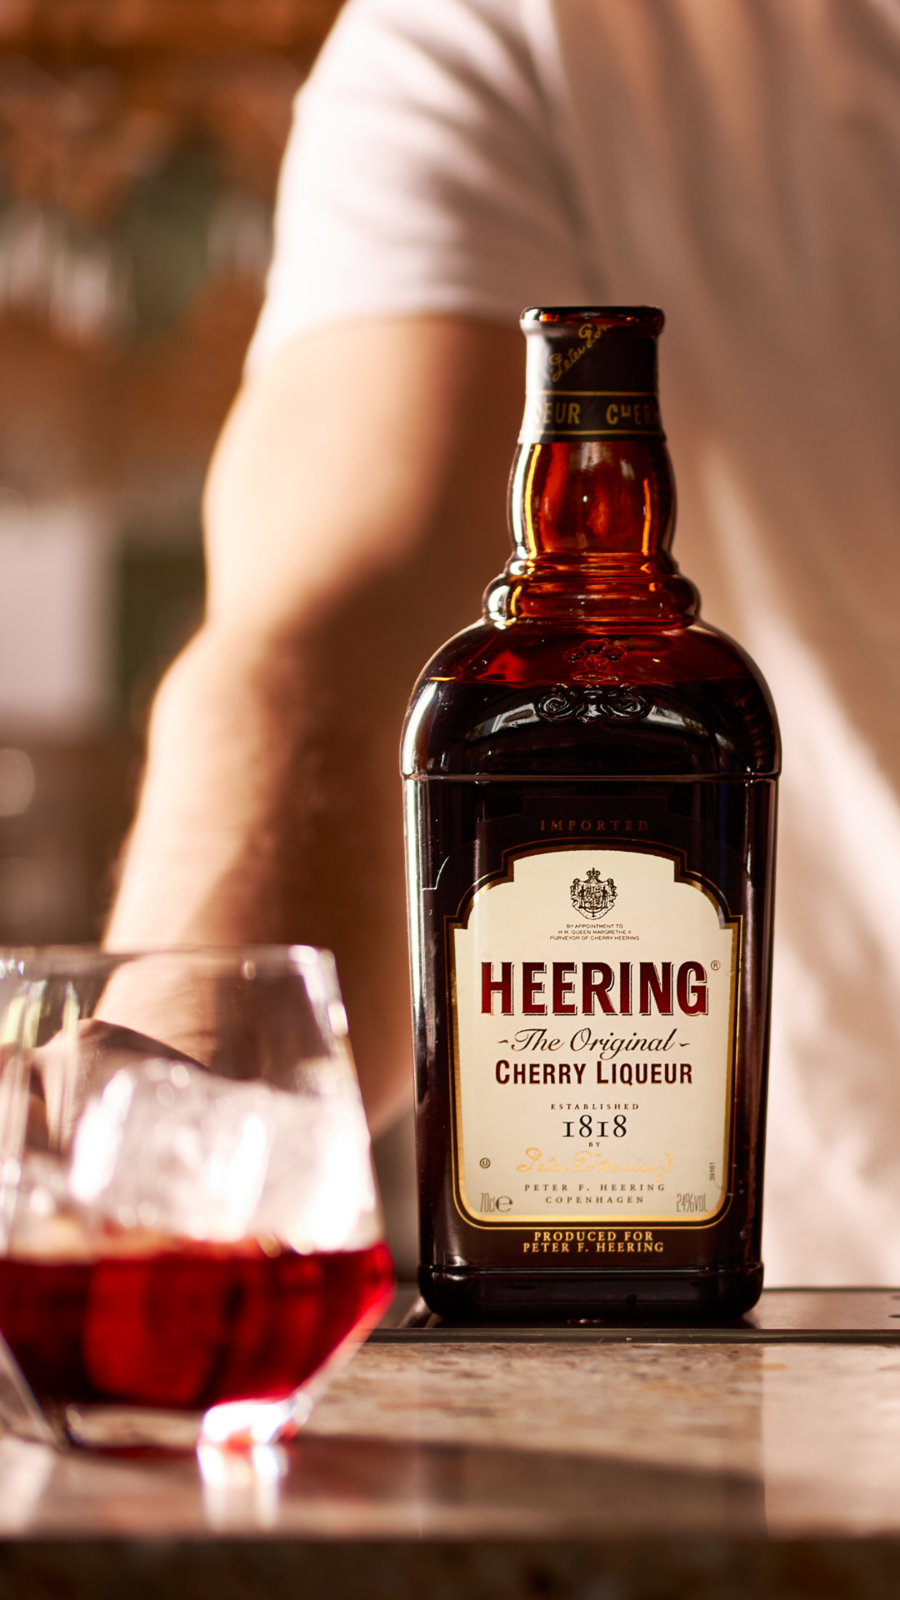 The story of Heering cherry liqueur